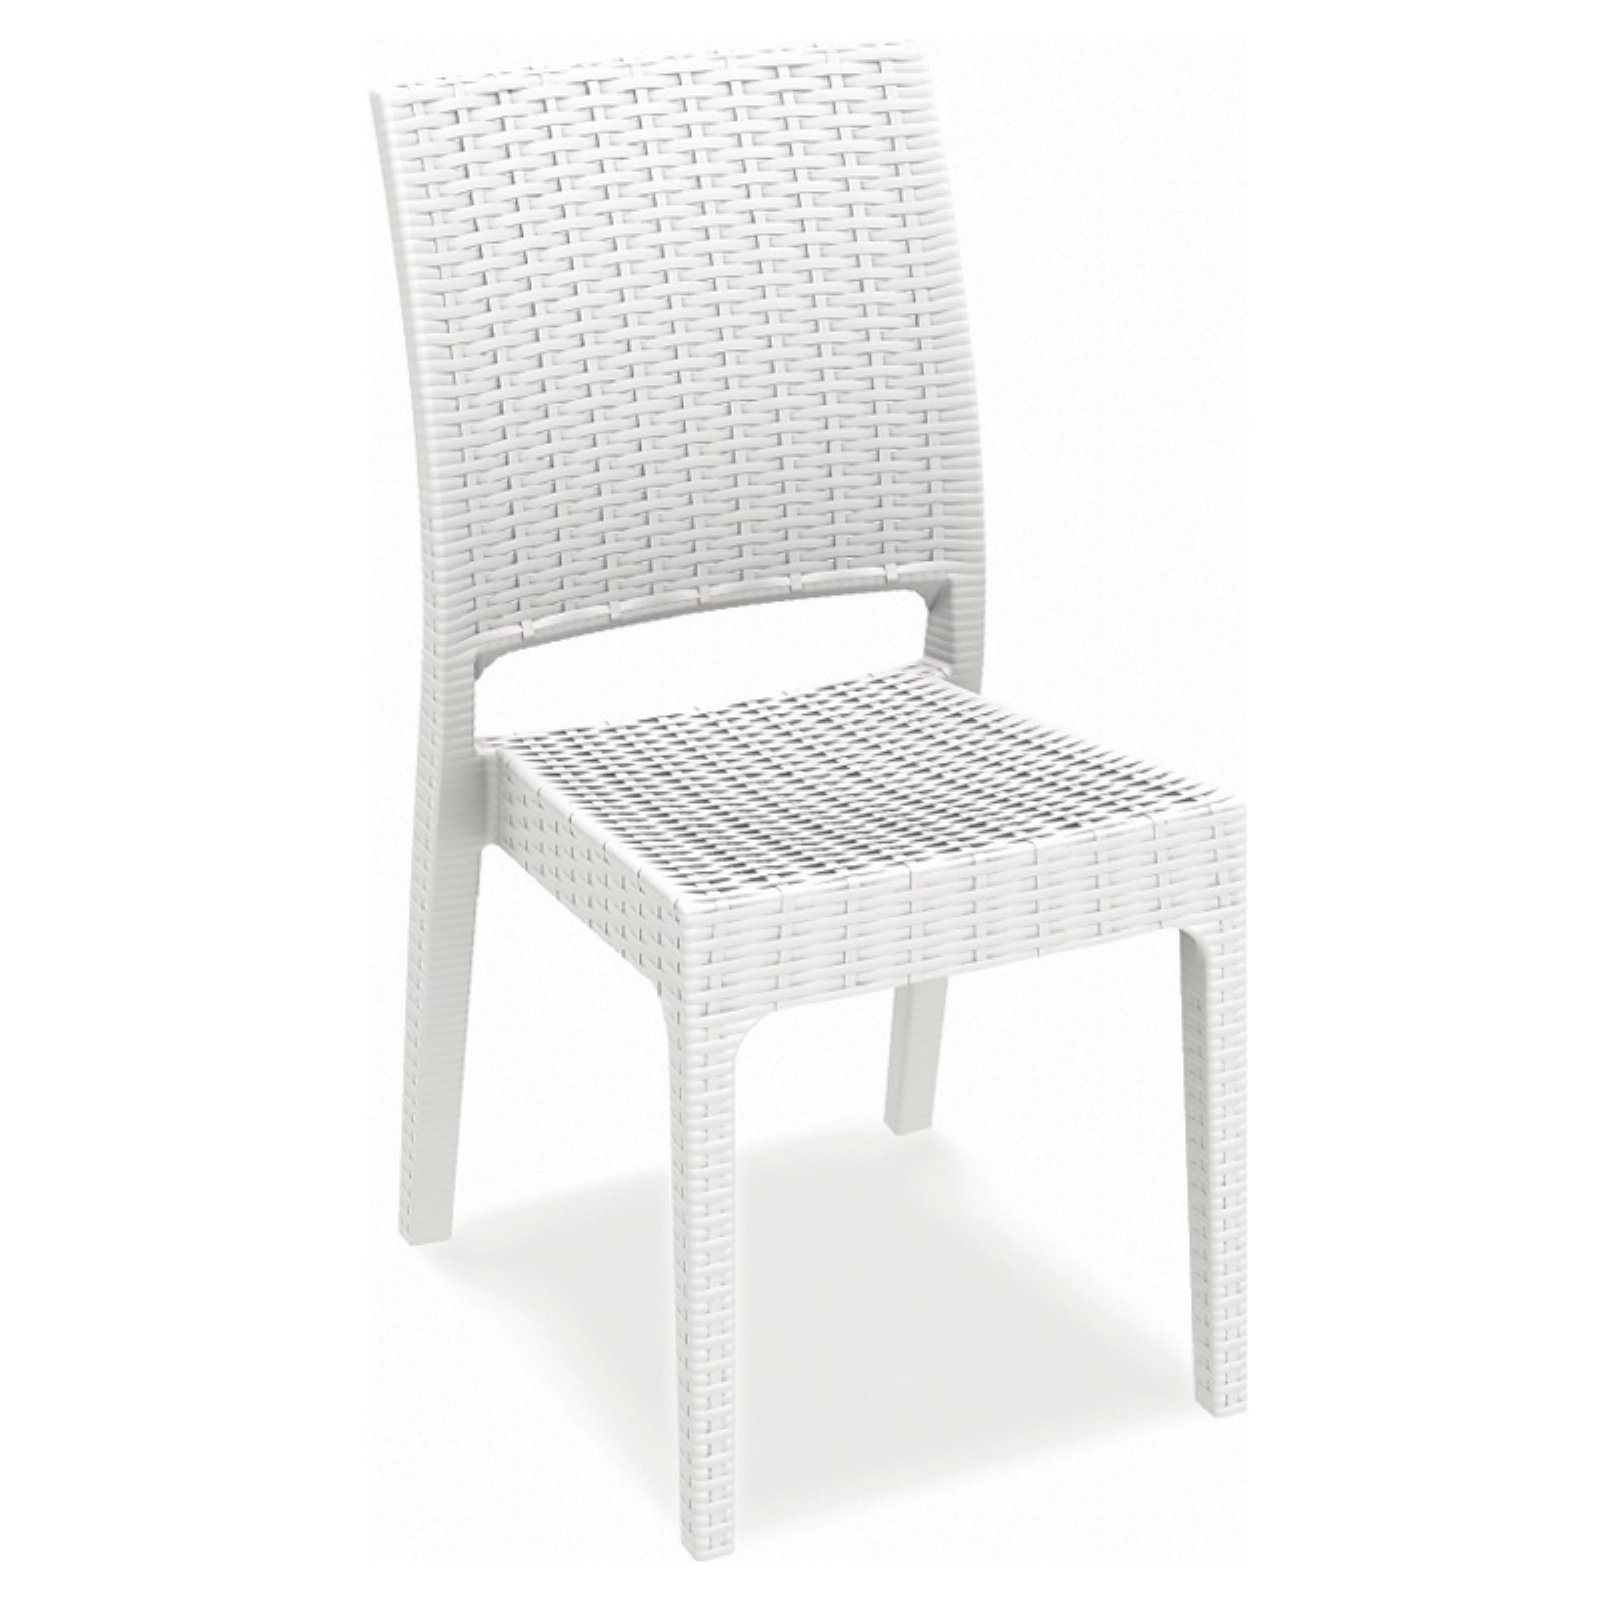 Siesta Florida Resin Wicker Dining Chair Set of 2 by Compamia